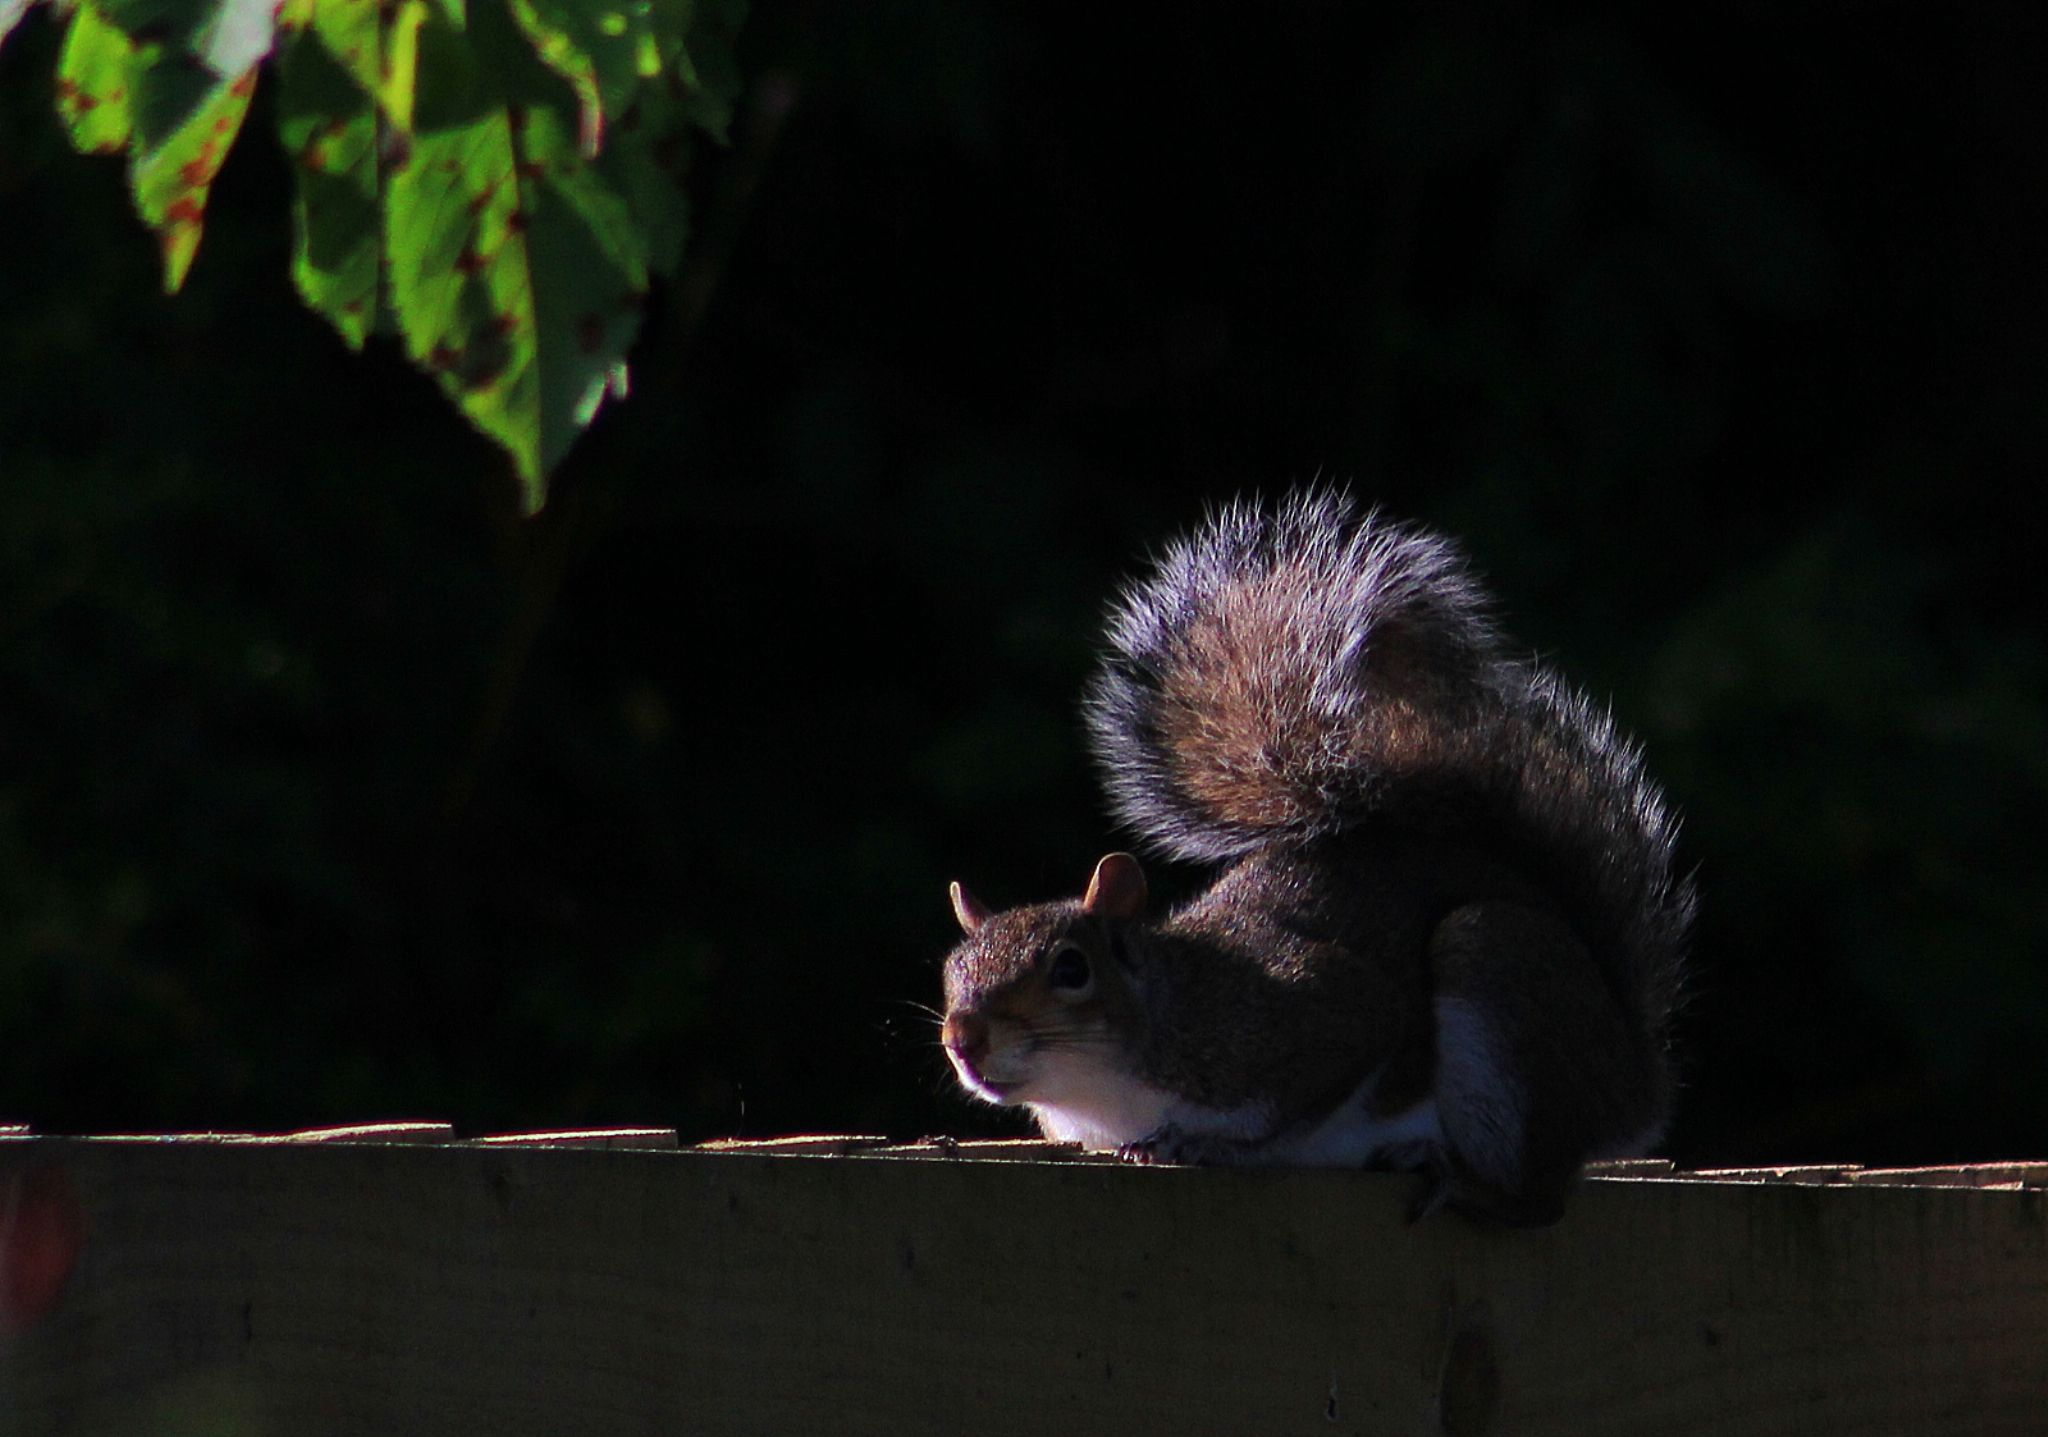 Morning squirrel by Turnip Towers